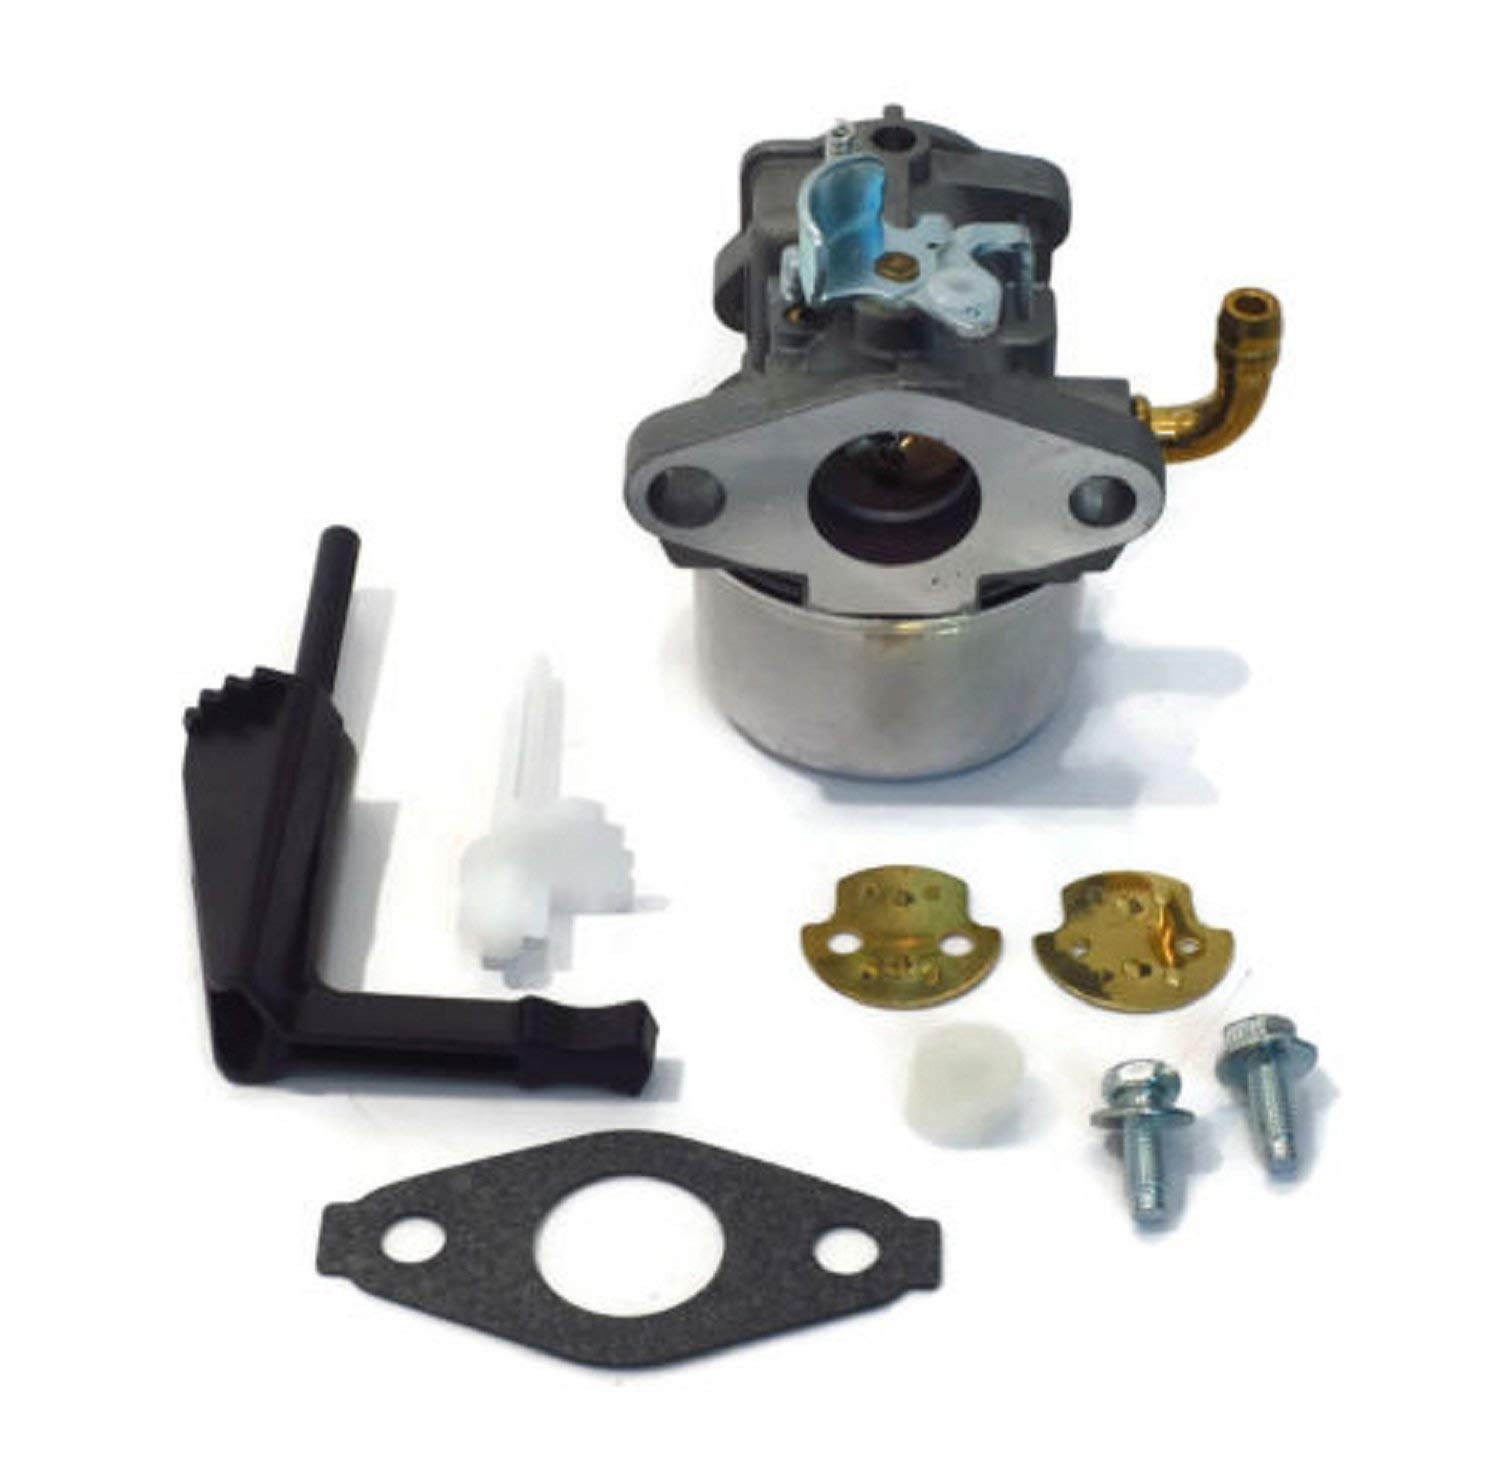 USA Premium Store For Briggs & Stratton 798653 Carburetor Replaces #697354, 790290, 791077, 698860